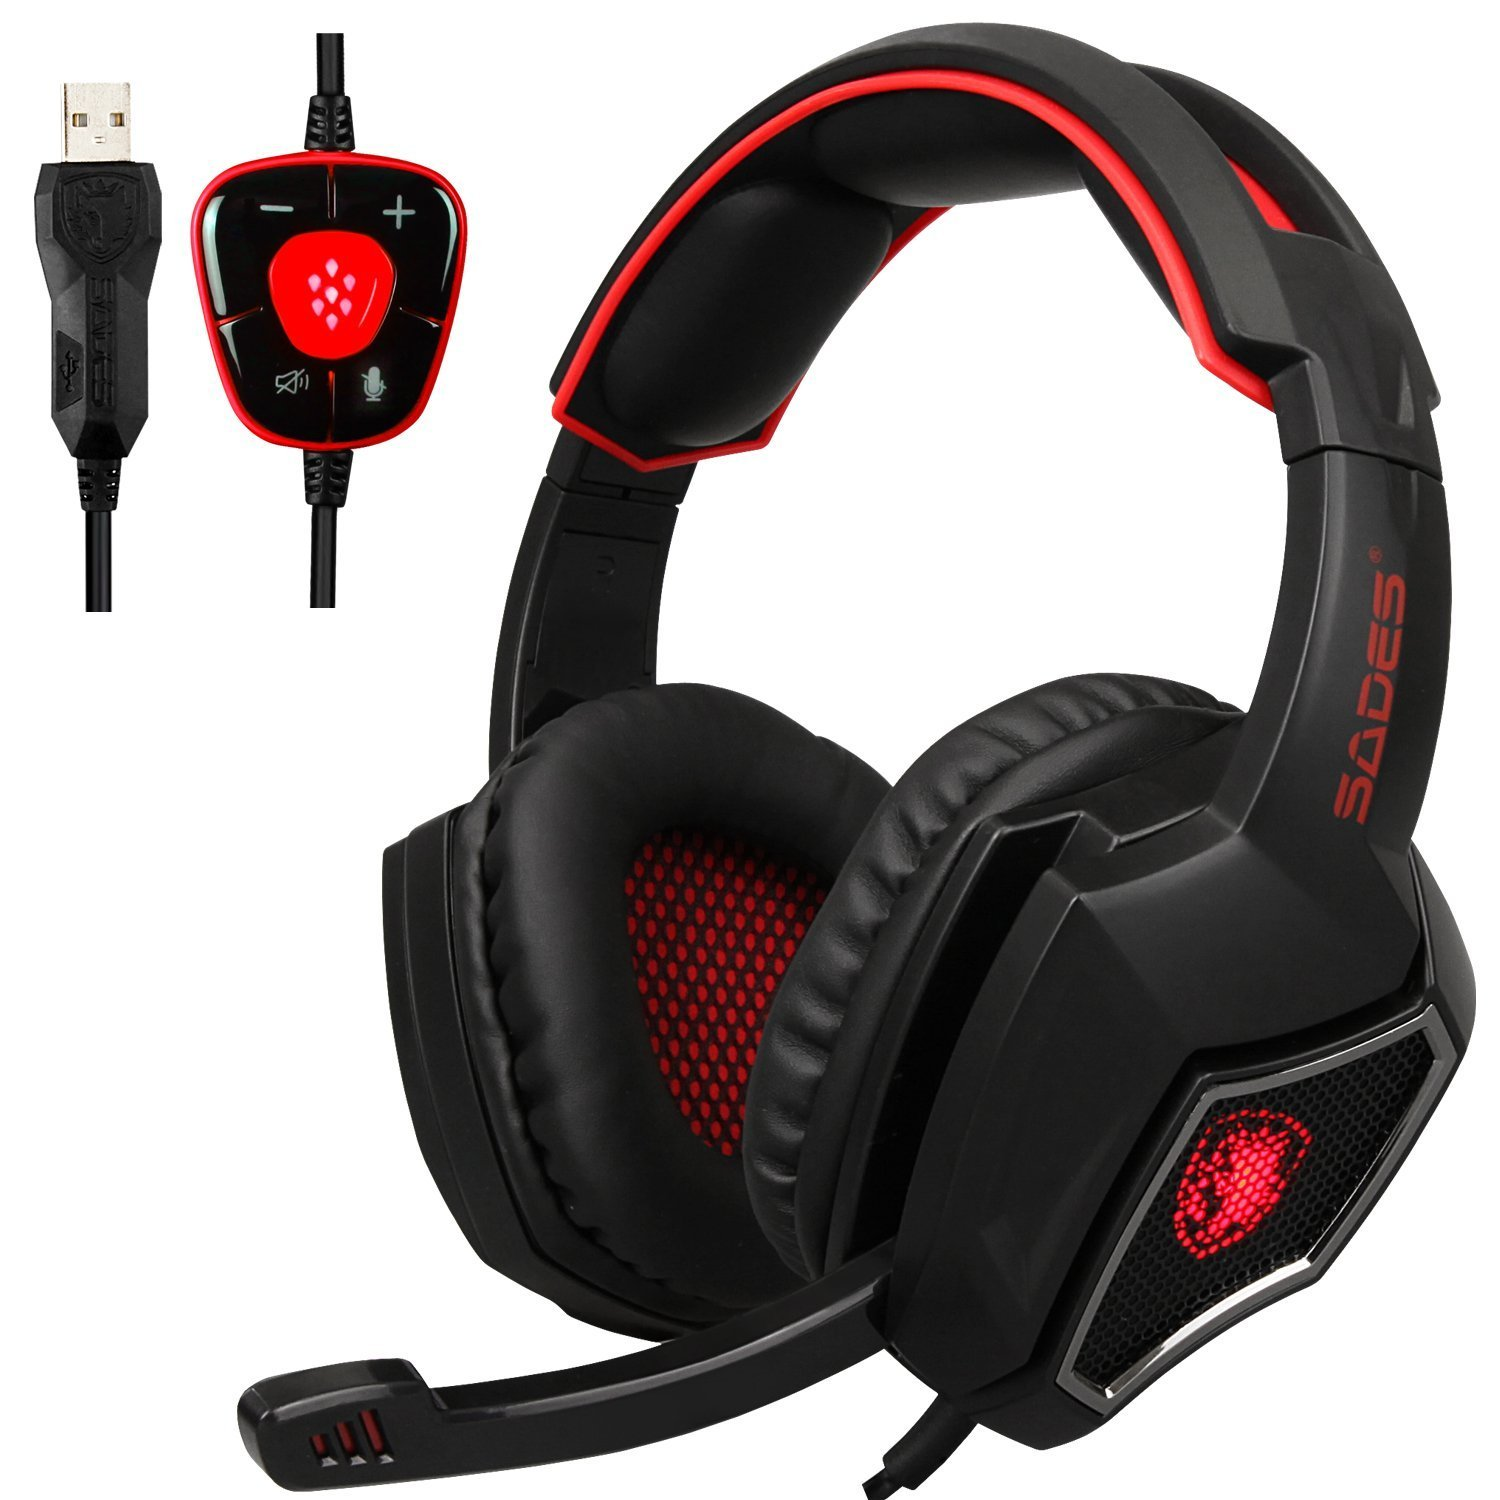 Yanni Sades Spiritwolf Usb Version Pc Computer Over Ear Earphone Headset Asus Stereo Oem Gaming 71 Surround Sound Headphone With Mic Noise Reduction